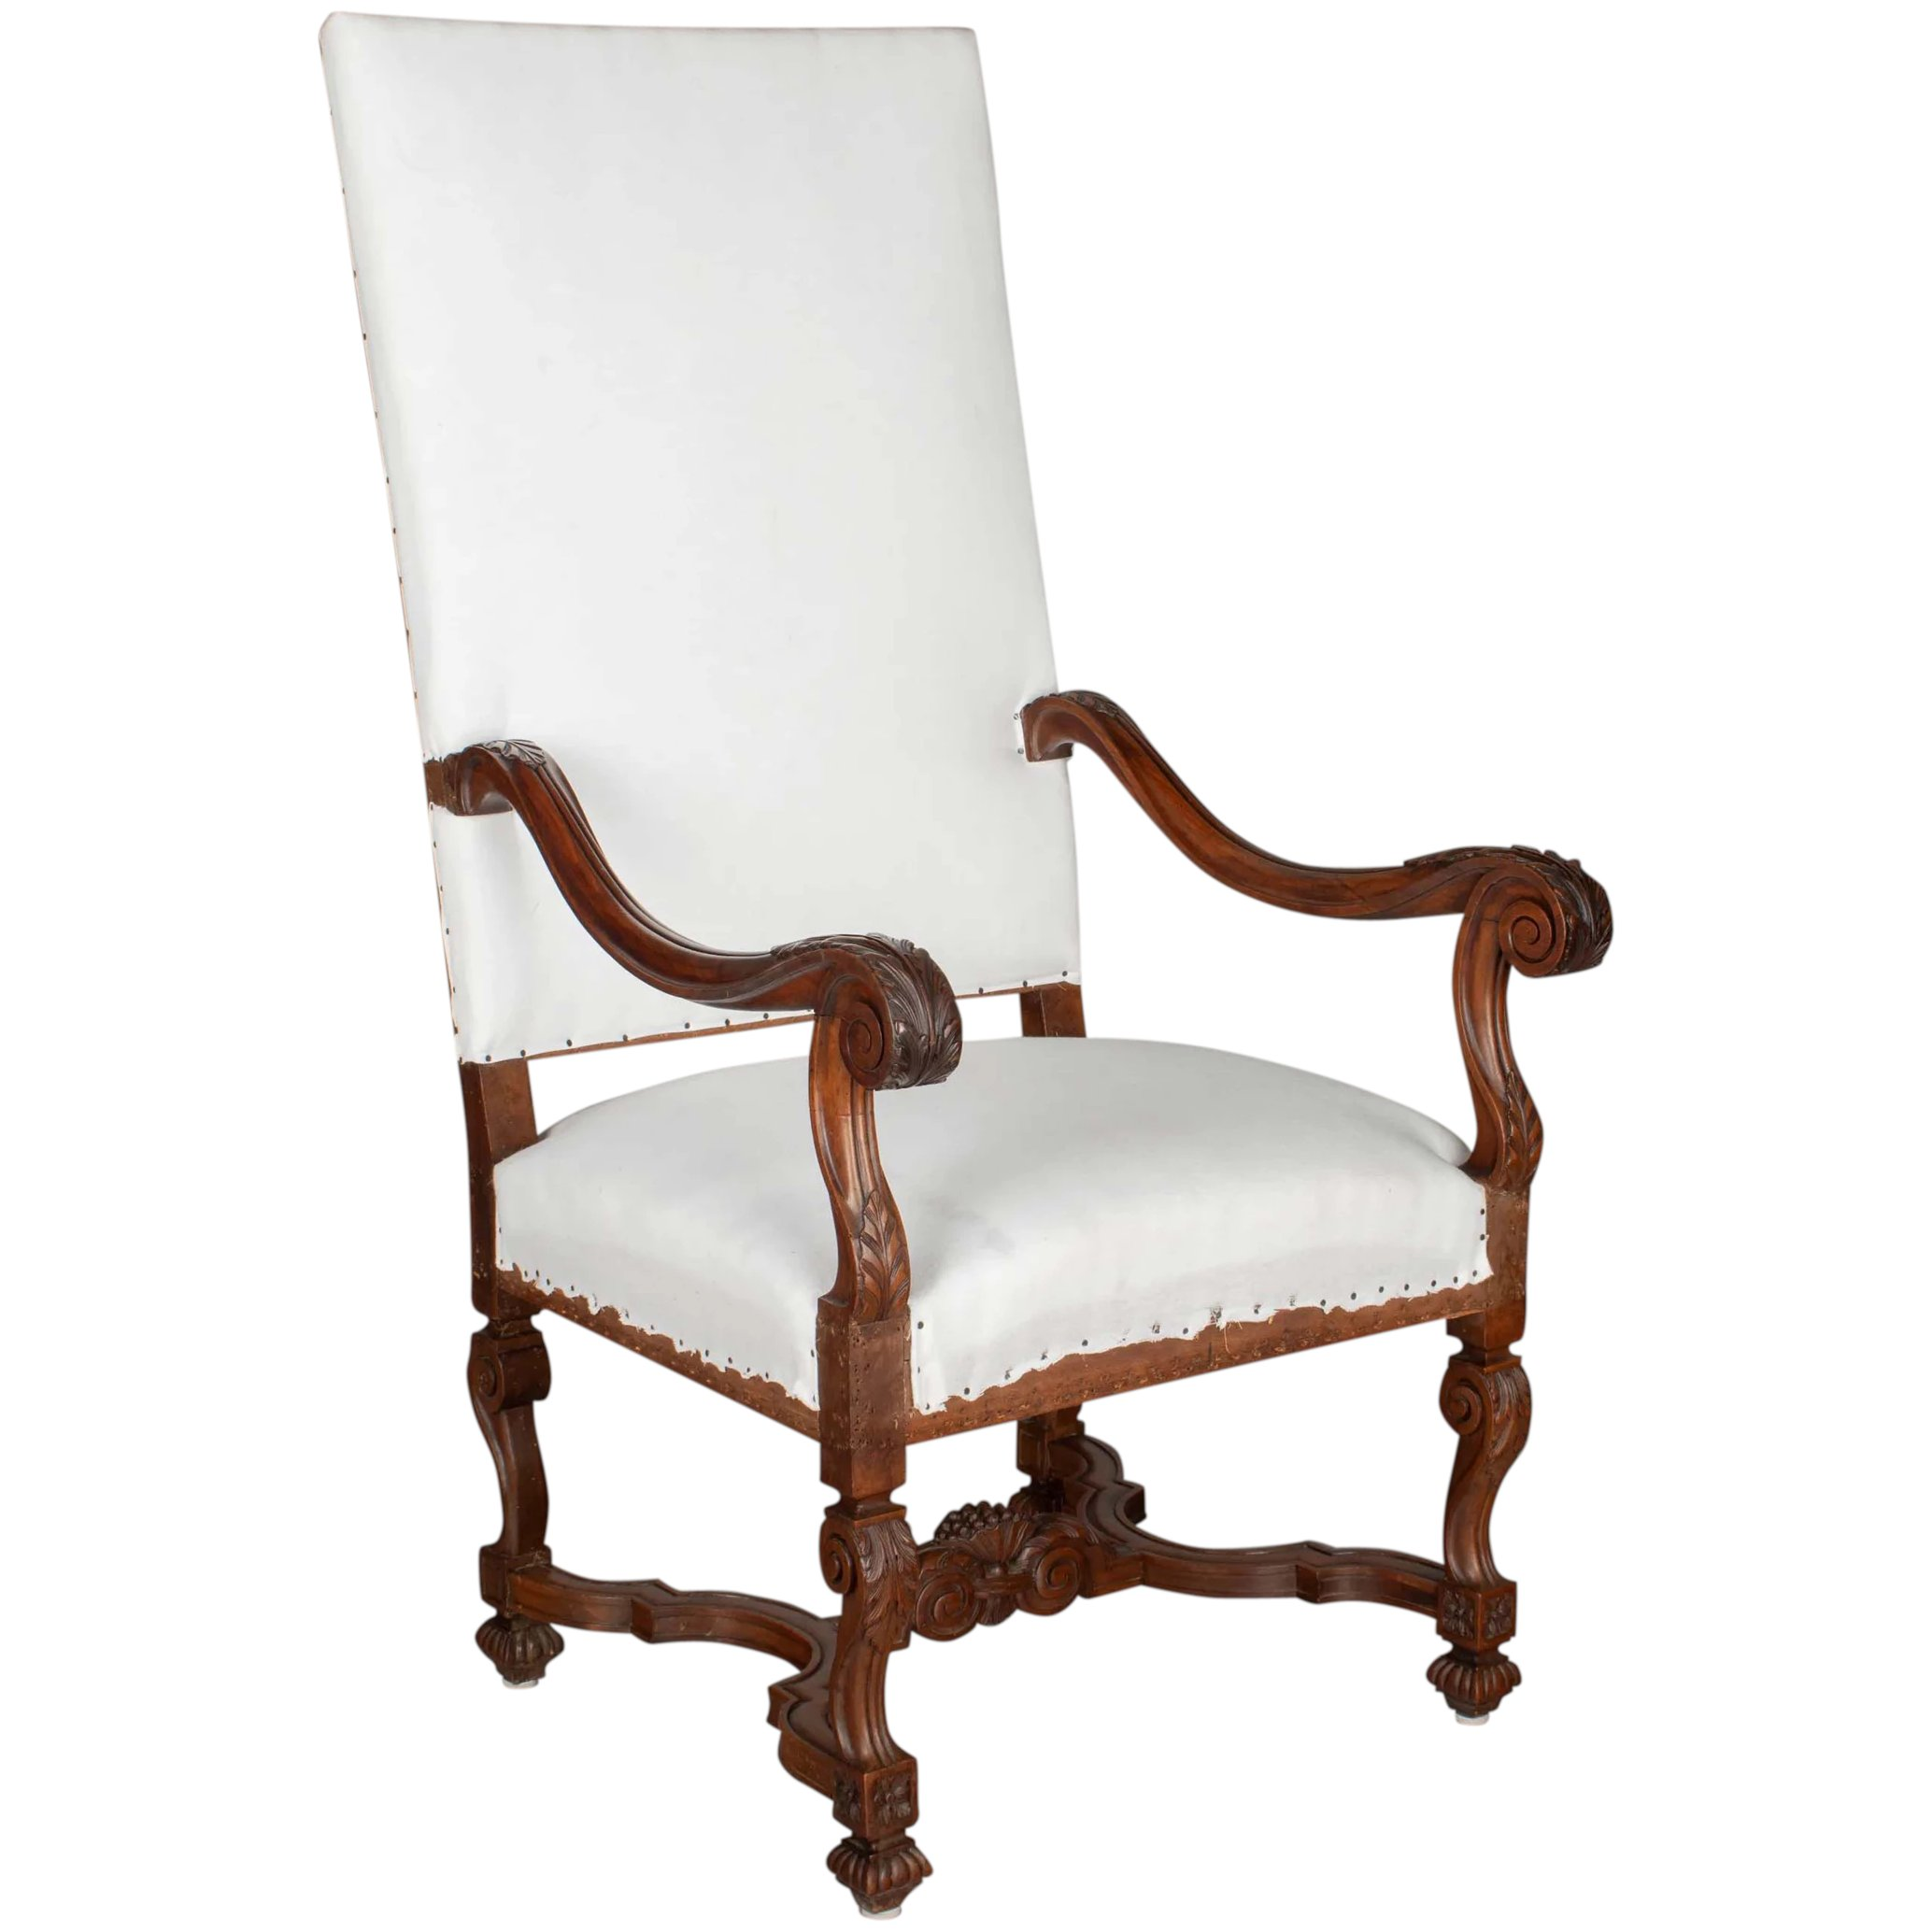 19th French Louis Xiii Style Fauteuil Or Arm Chair Olivier Fleury Inc French Antiques Ruby Lane